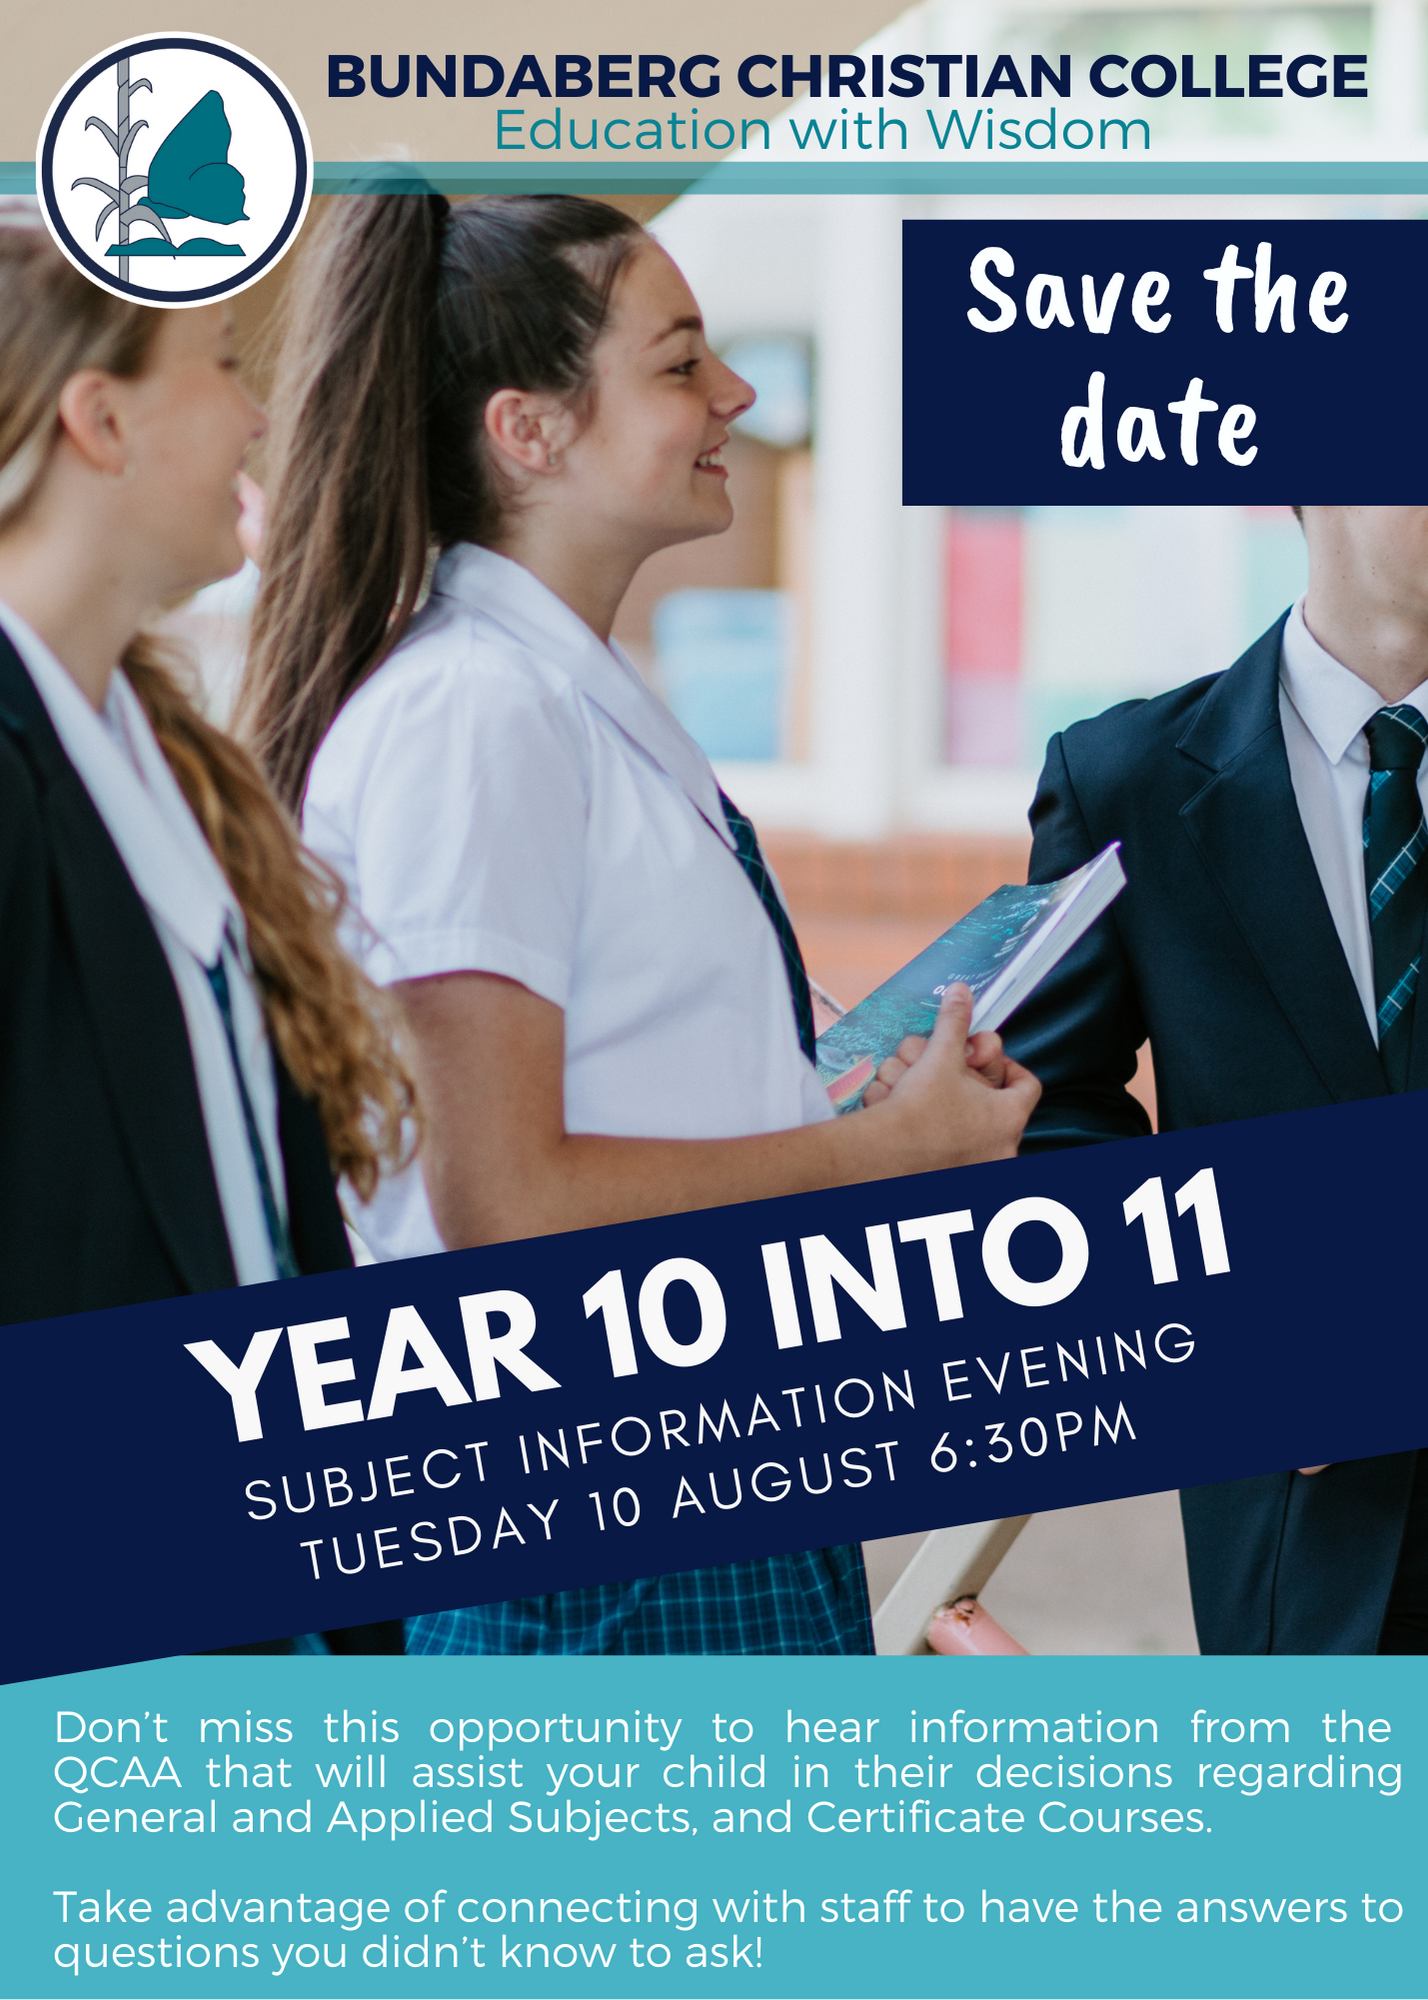 Year 10 Into Year 11 Subject Information Evening